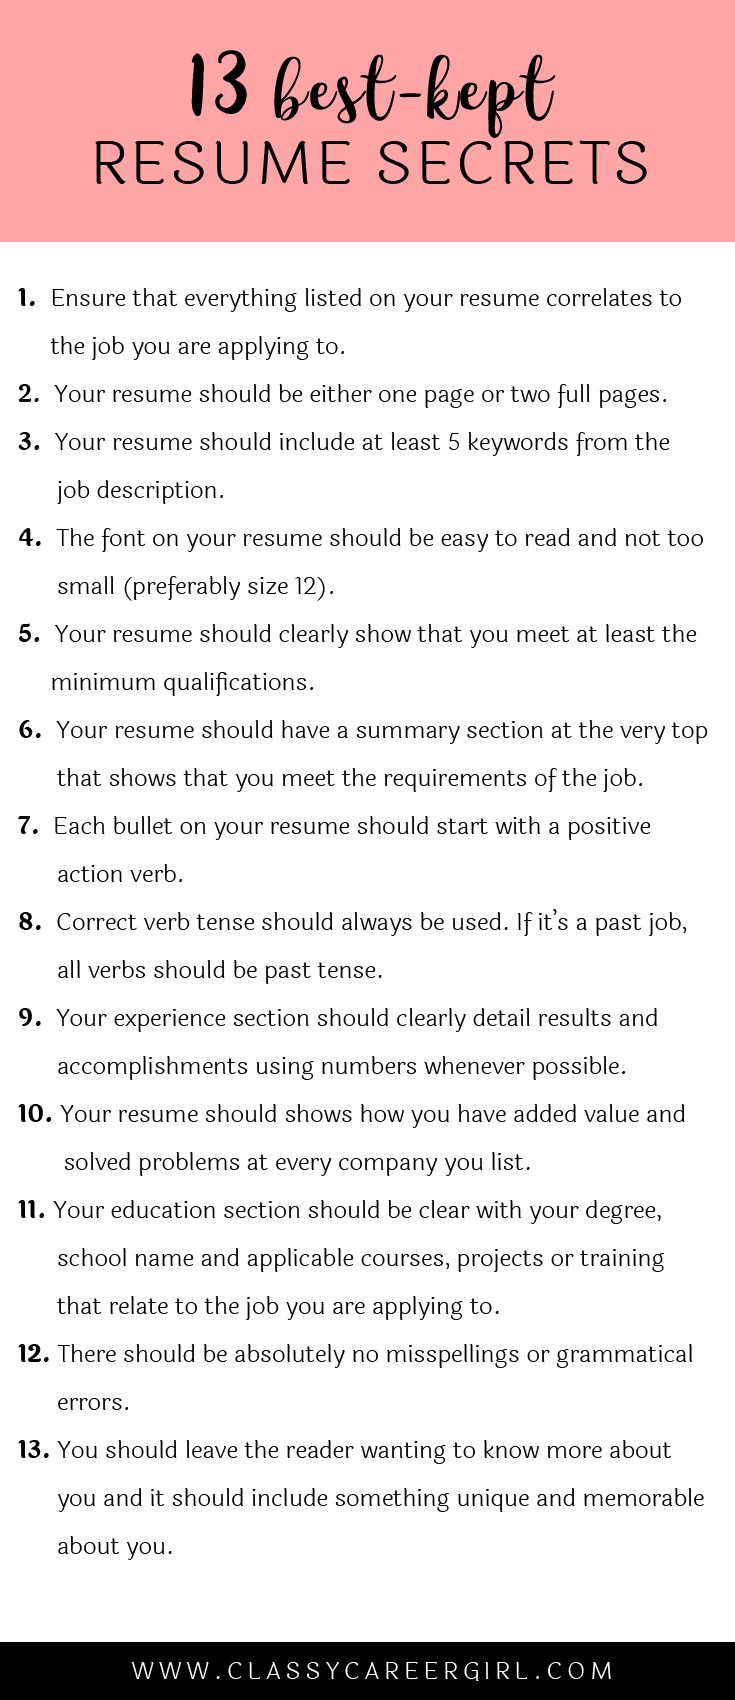 Opposenewapstandardsus  Winning  Ideas About Resume On Pinterest  Cv Format Resume Cv And  With Inspiring Some Hiring Managers Will Toss Your Resume Out If You Dont Know These  With Agreeable Job Resumes Also How To Prepare A Resume In Addition Chef Resume And Cover Letters For Resume As Well As Visual Resume Additionally Sample Nursing Resume From Pinterestcom With Opposenewapstandardsus  Inspiring  Ideas About Resume On Pinterest  Cv Format Resume Cv And  With Agreeable Some Hiring Managers Will Toss Your Resume Out If You Dont Know These  And Winning Job Resumes Also How To Prepare A Resume In Addition Chef Resume From Pinterestcom